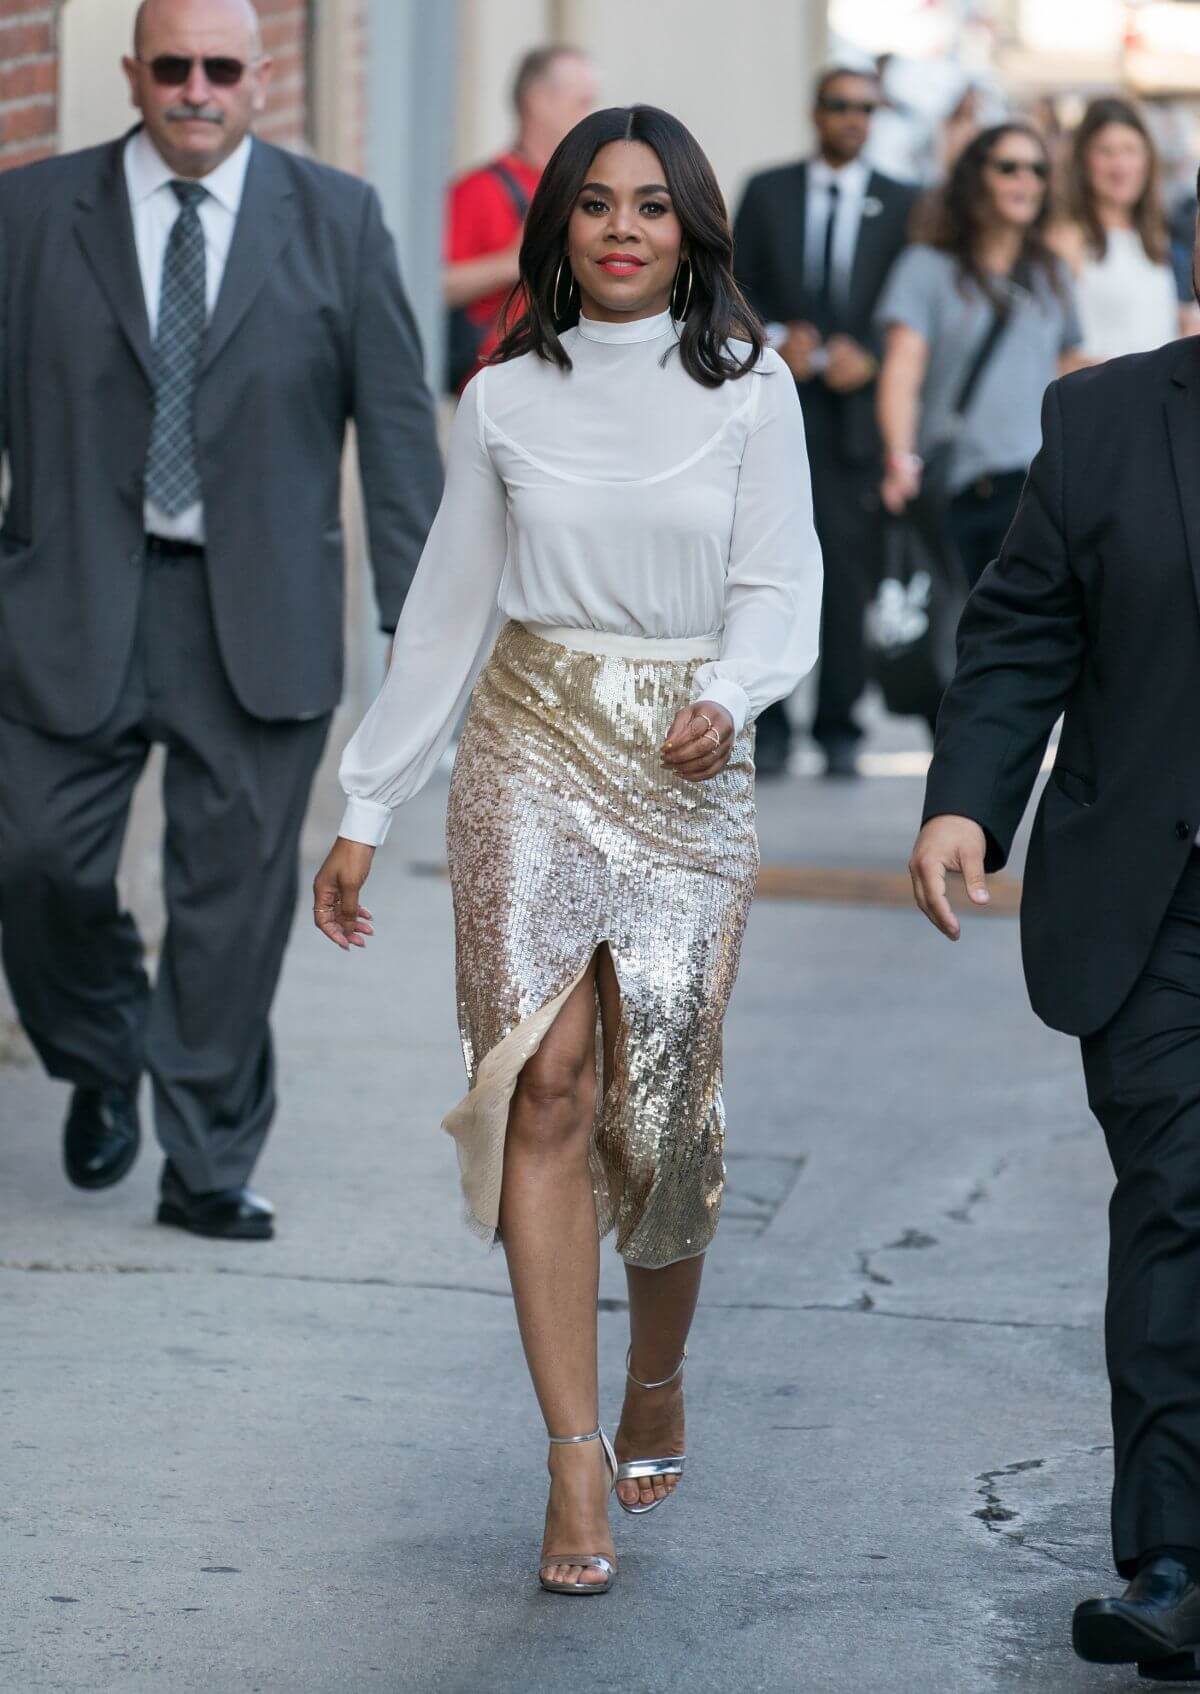 Regina Hall sexy feet pic